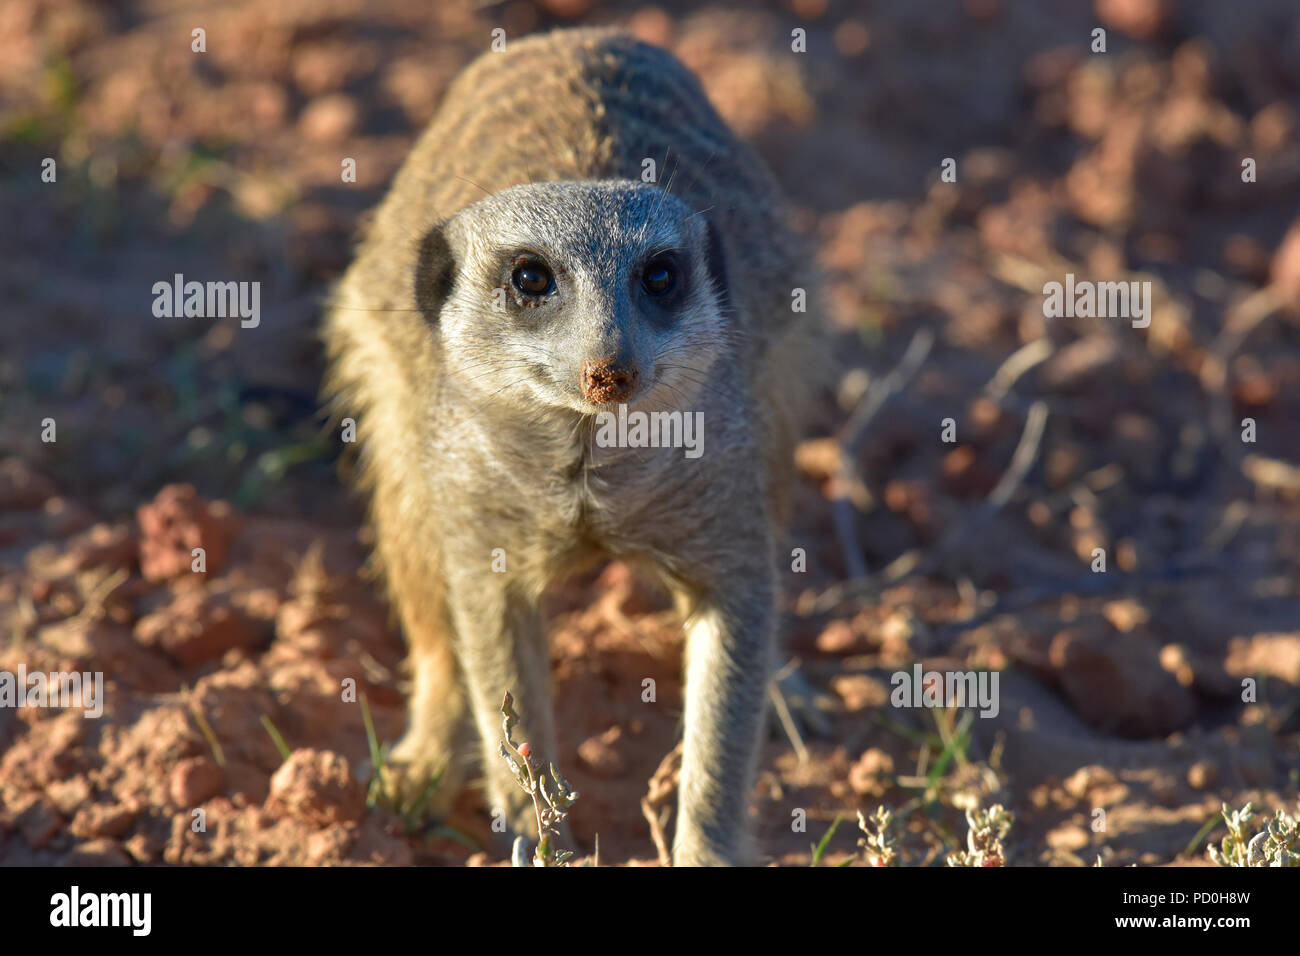 South Africa, a fantastic travel destination to experience third and first world together. Suricat or meerkat foraging in Addo Elephant park. - Stock Image